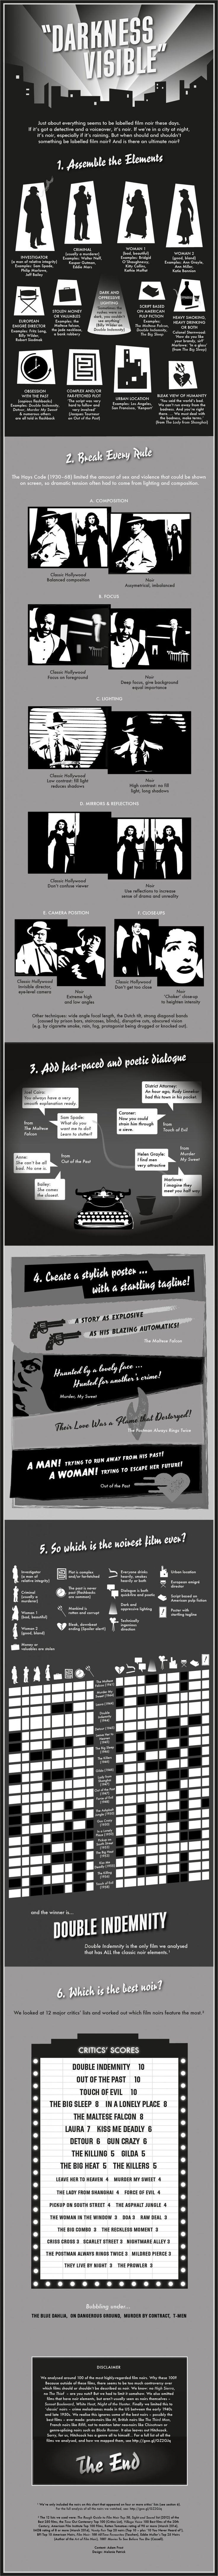 What makes a film noir? and which is the noirest film of all? These questions are answered in our infographic dedicated to the shadowy world of one of classic Hollywood's most beloved subgenres. Design: Melanie Patrick